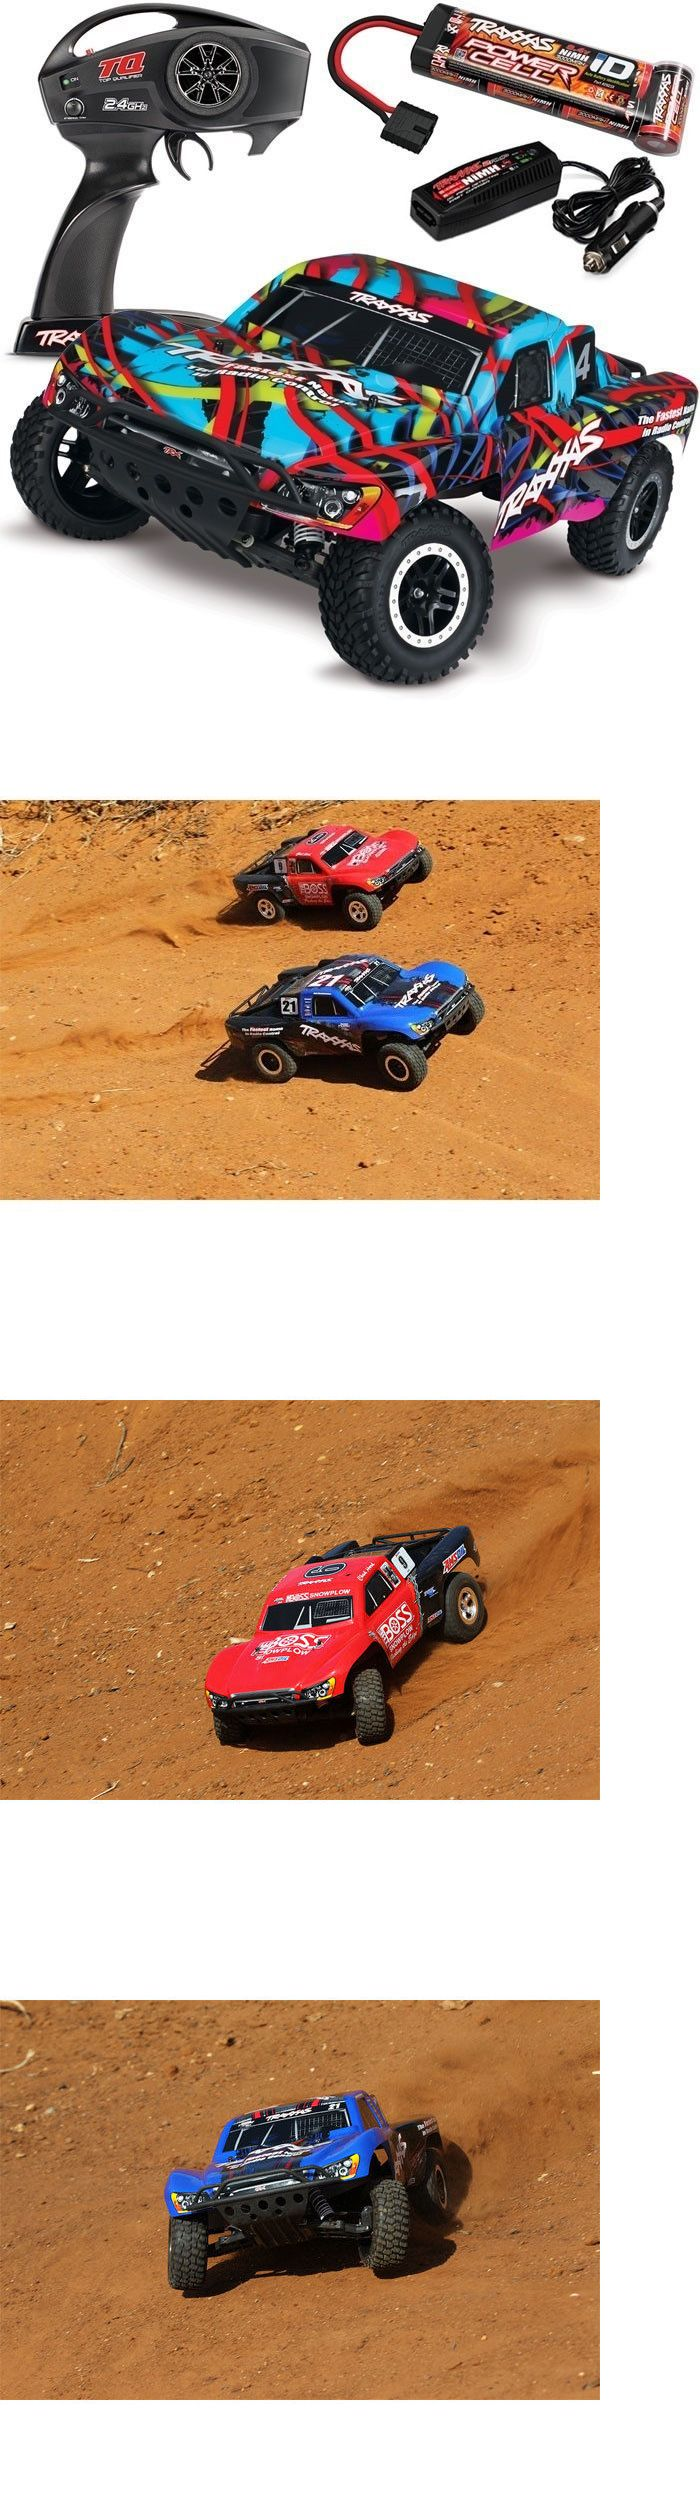 Cars Trucks and Motorcycles 182183: New Traxxas Slash 2Wd Rtr Short Course Truck W Quick Charger - Hawaiin Edition -> BUY IT NOW ONLY: $229.95 on eBay!